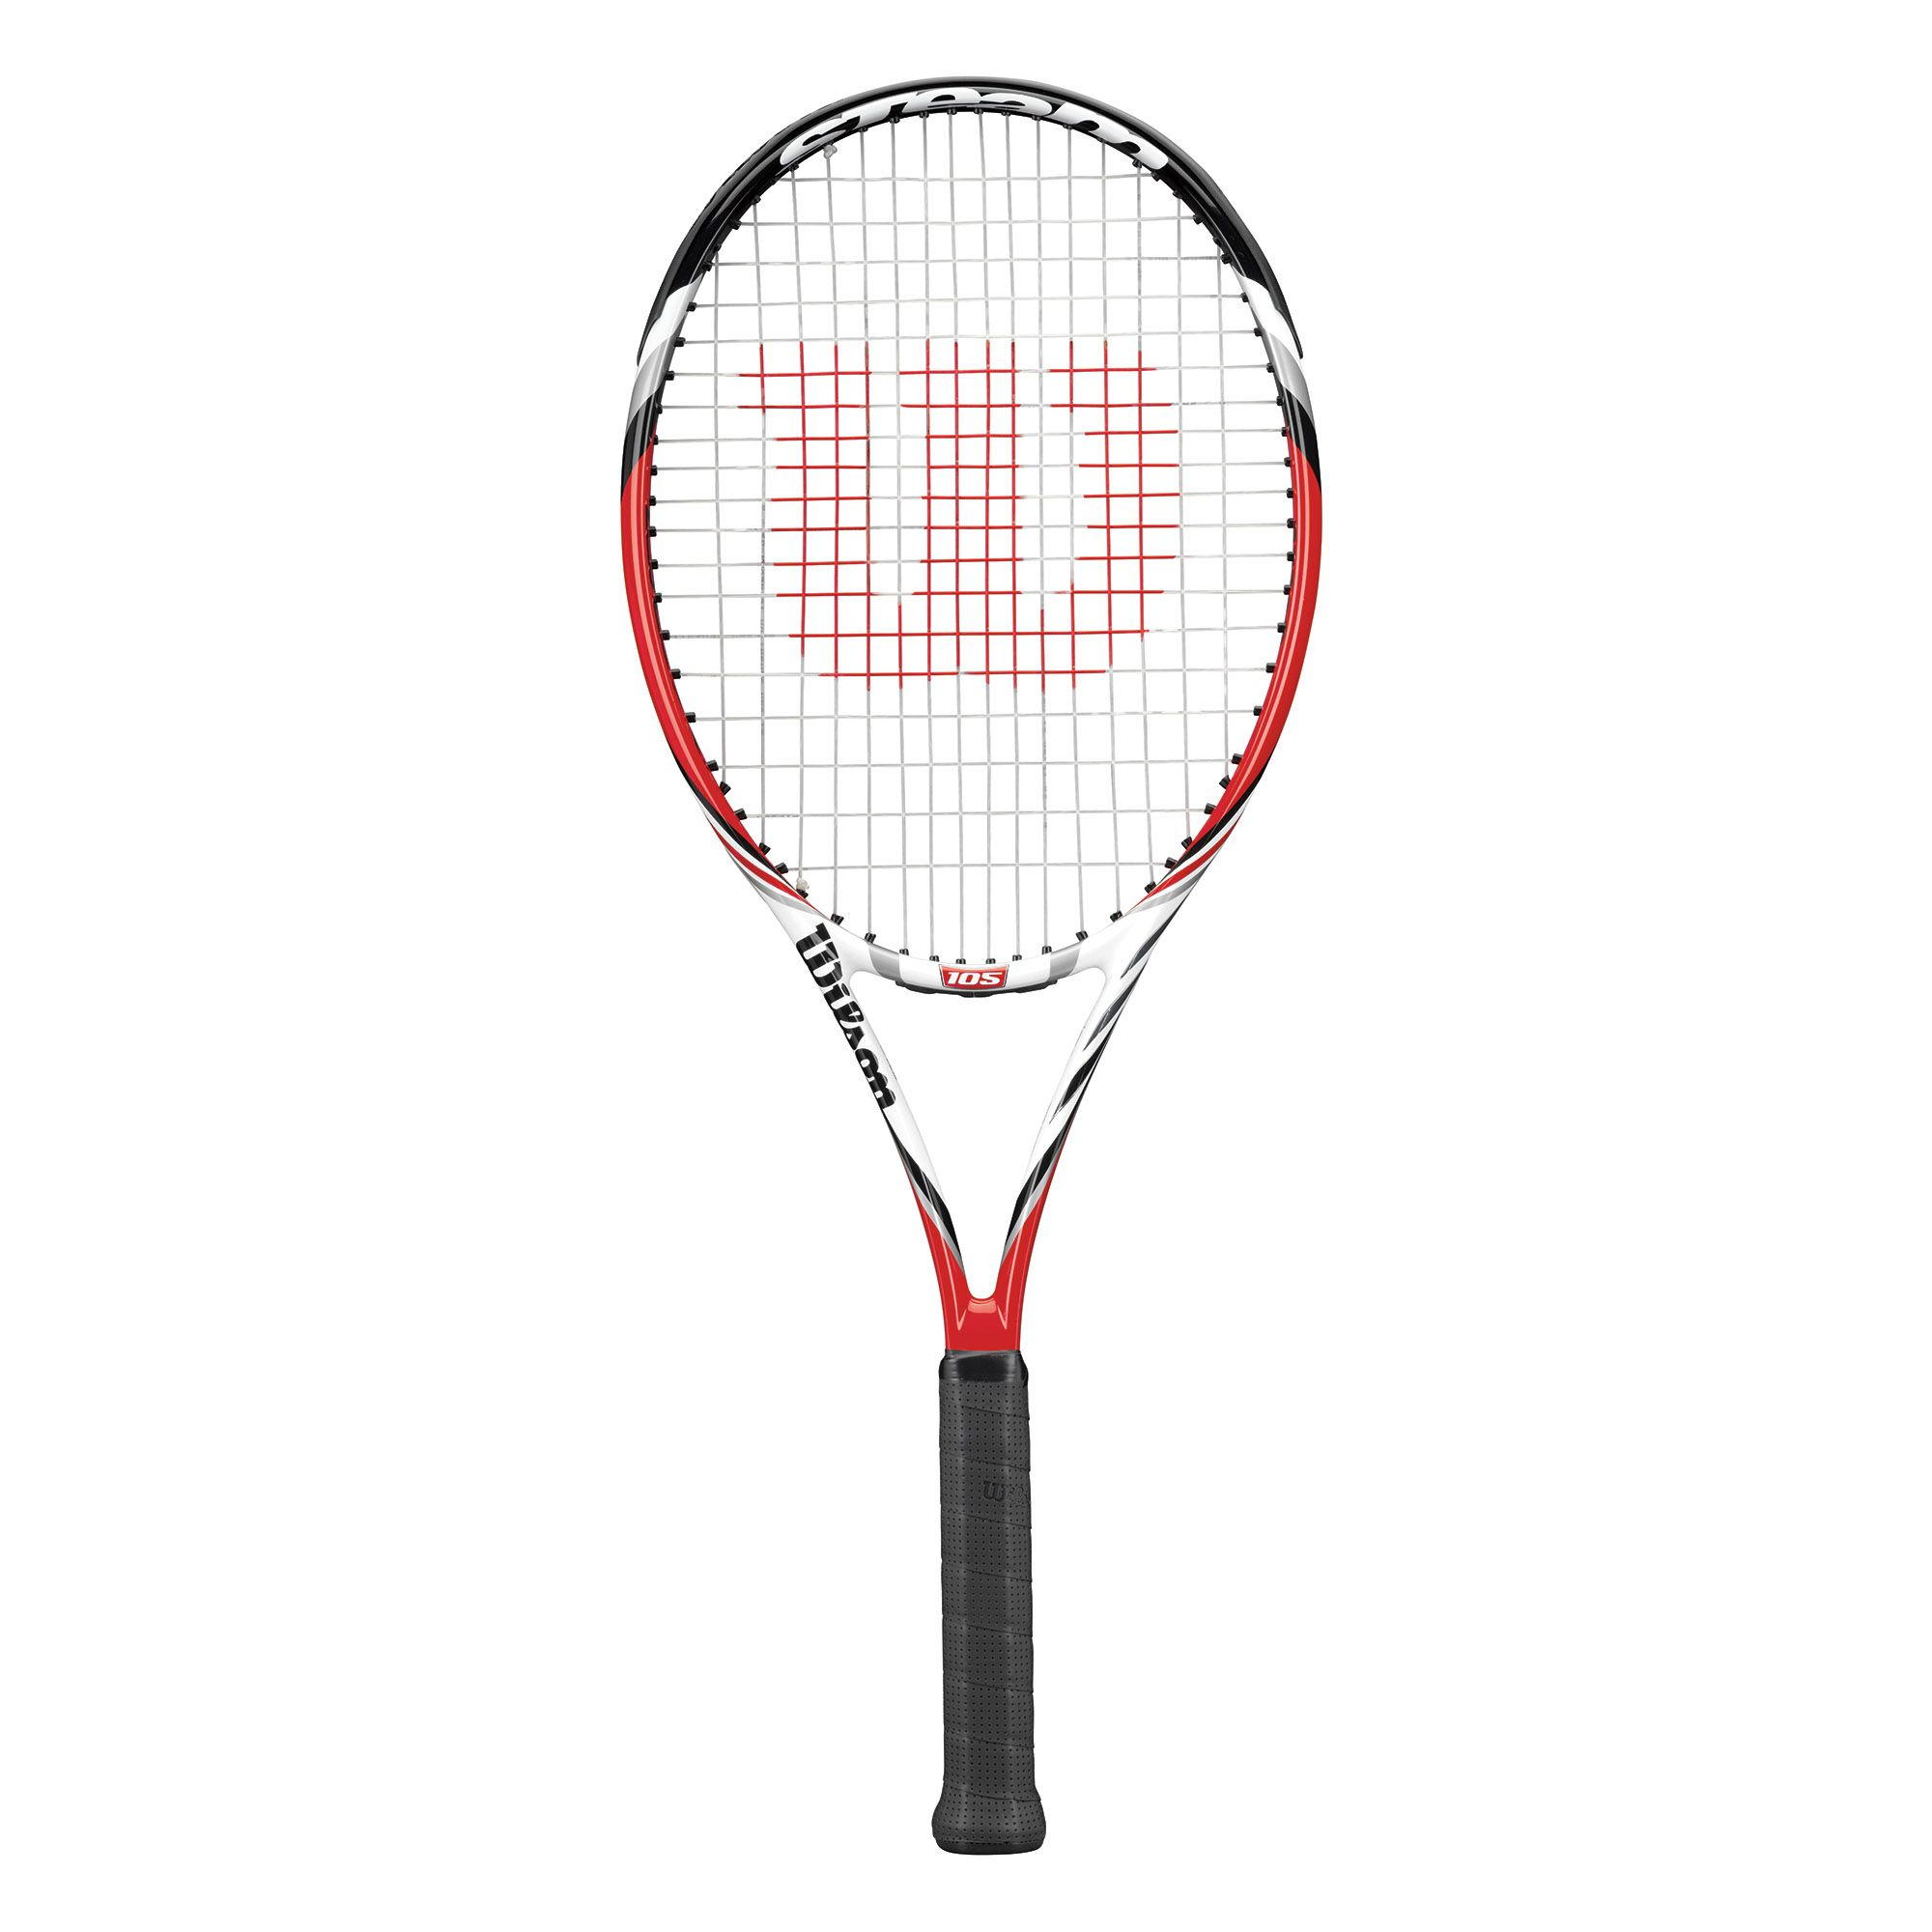 tennis racket Find great deals on ebay for tennis racket shop with confidence.